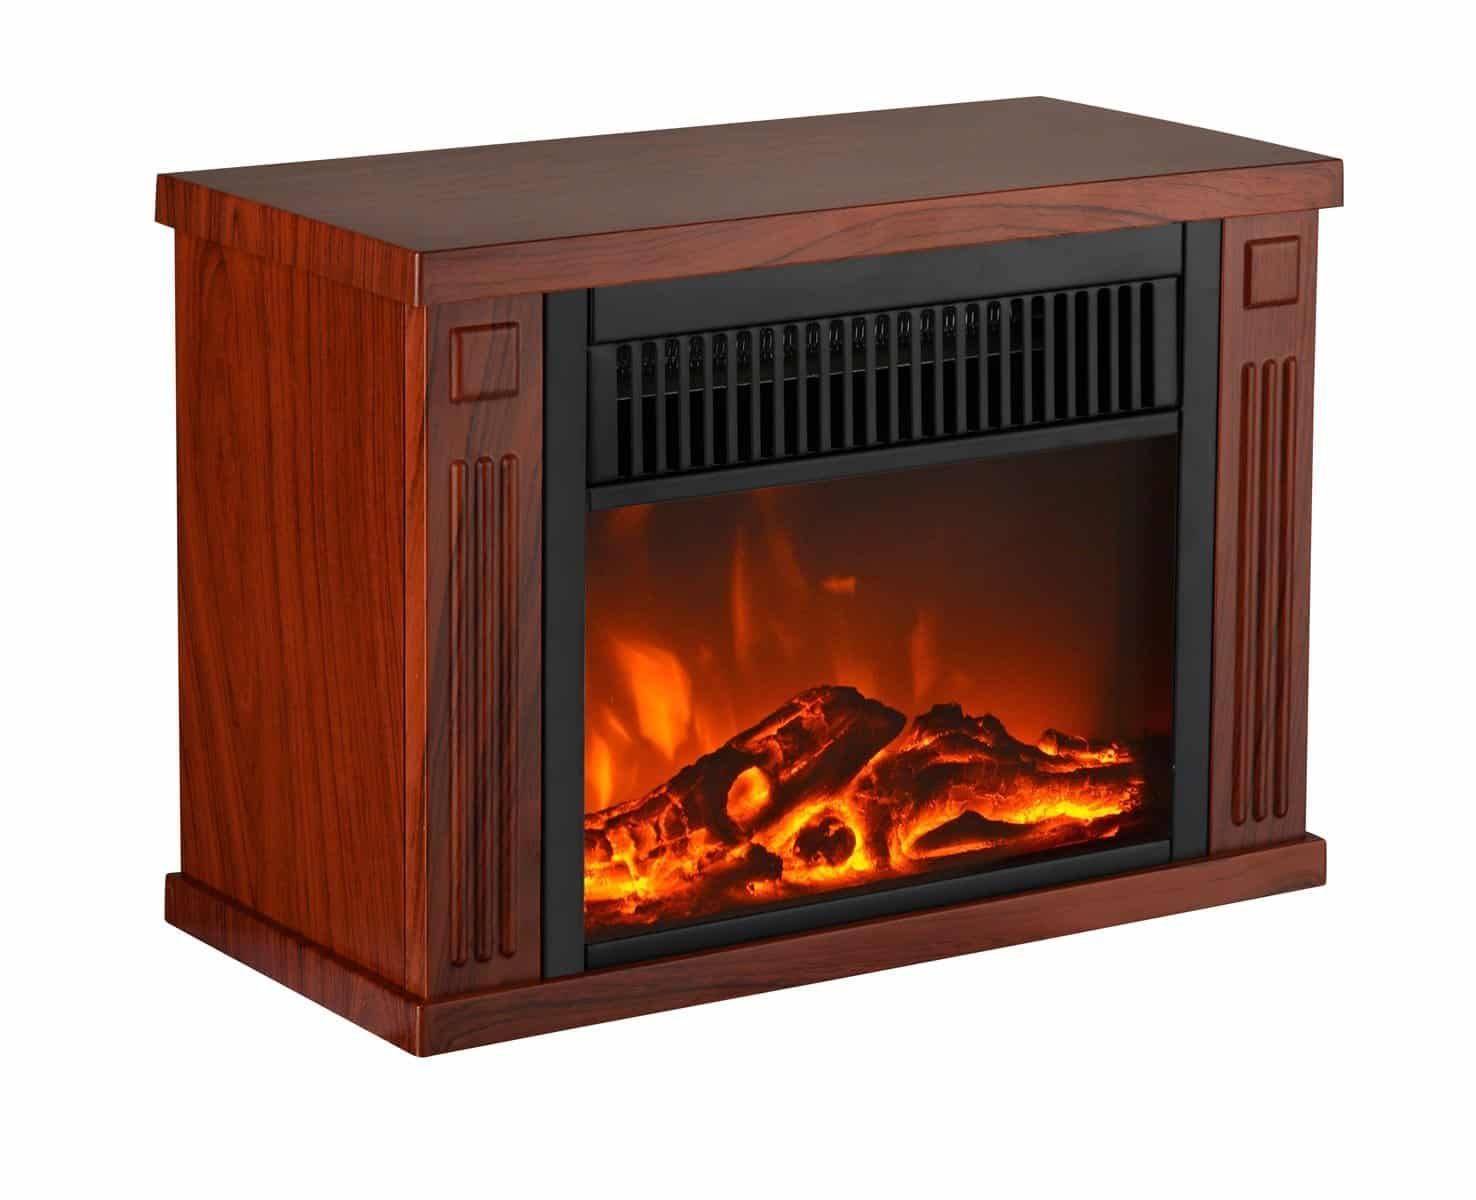 Electric Fireplace Insert Reviews  And Buying Guide - Gas inserts for existing fireplaces